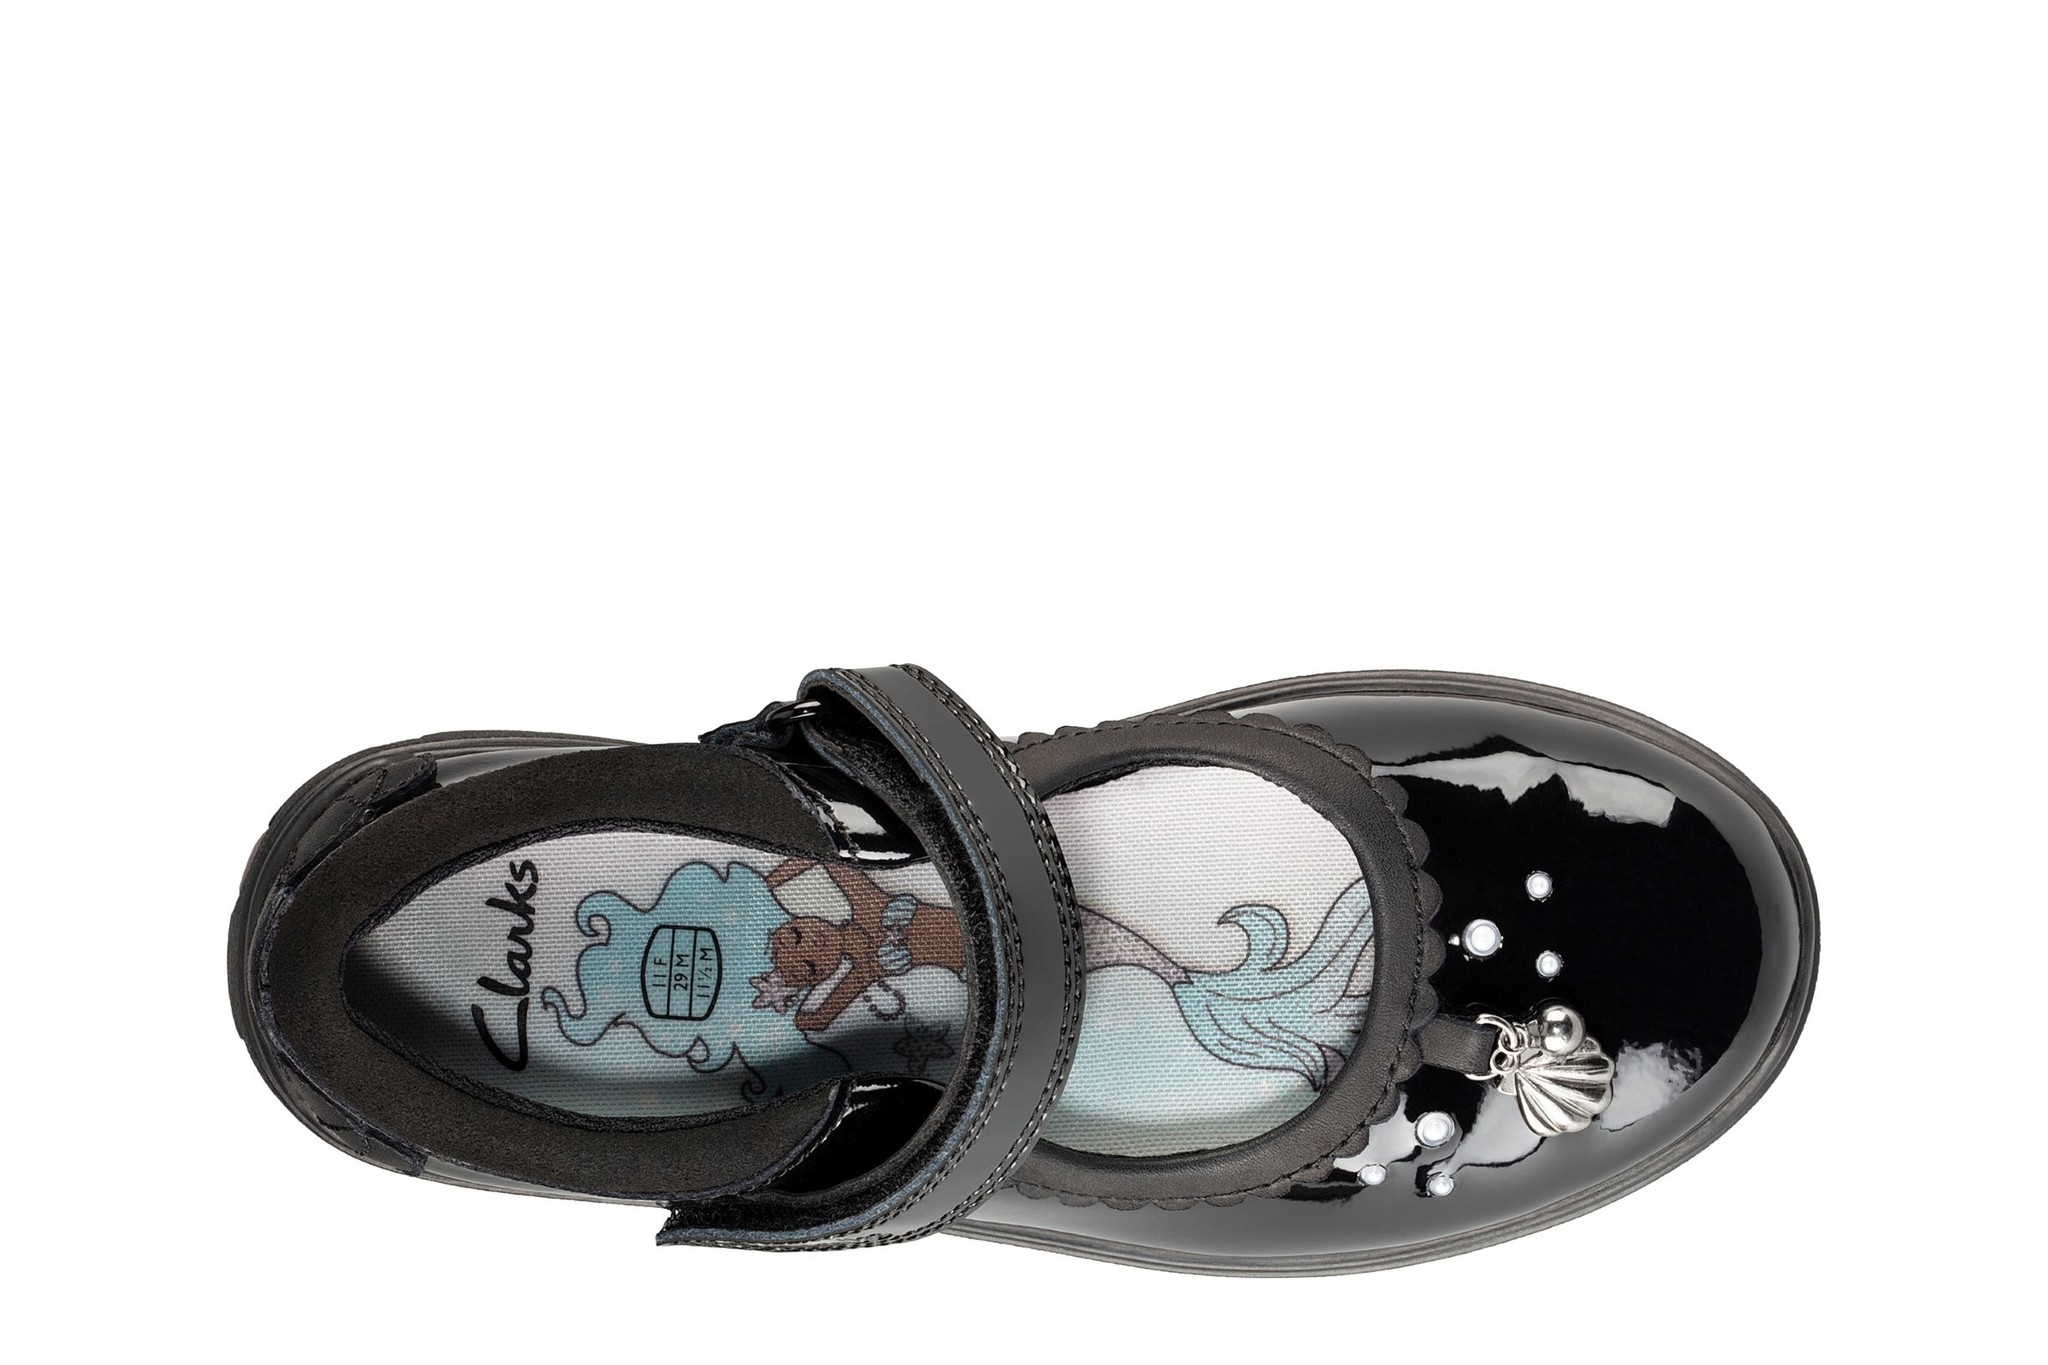 Clarks Sea Shimmer Patent